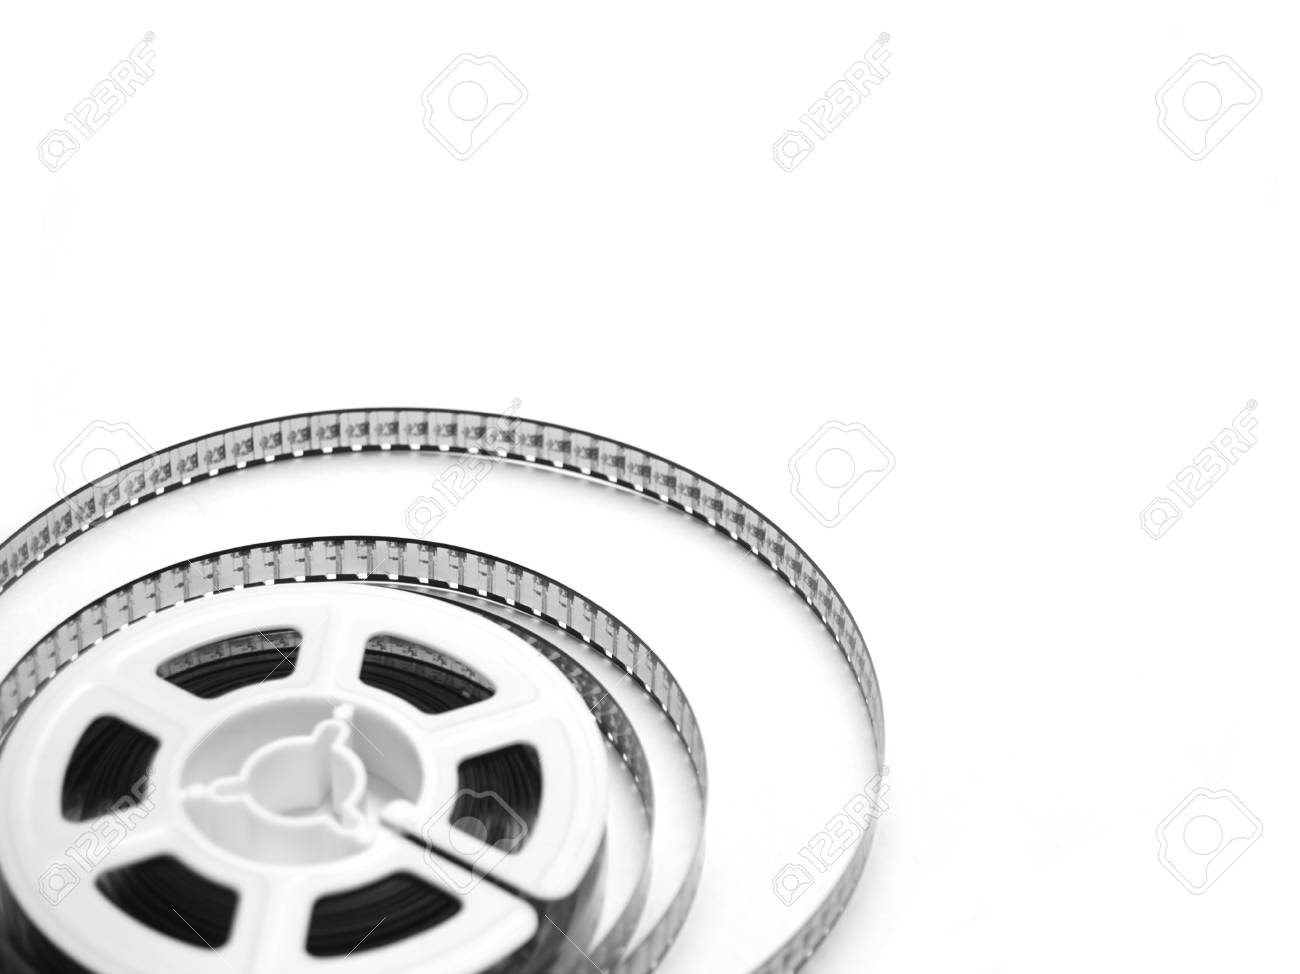 8mm film reels stock photo picture and royalty free image image 8mm film reels stock photo 94489704 thecheapjerseys Choice Image